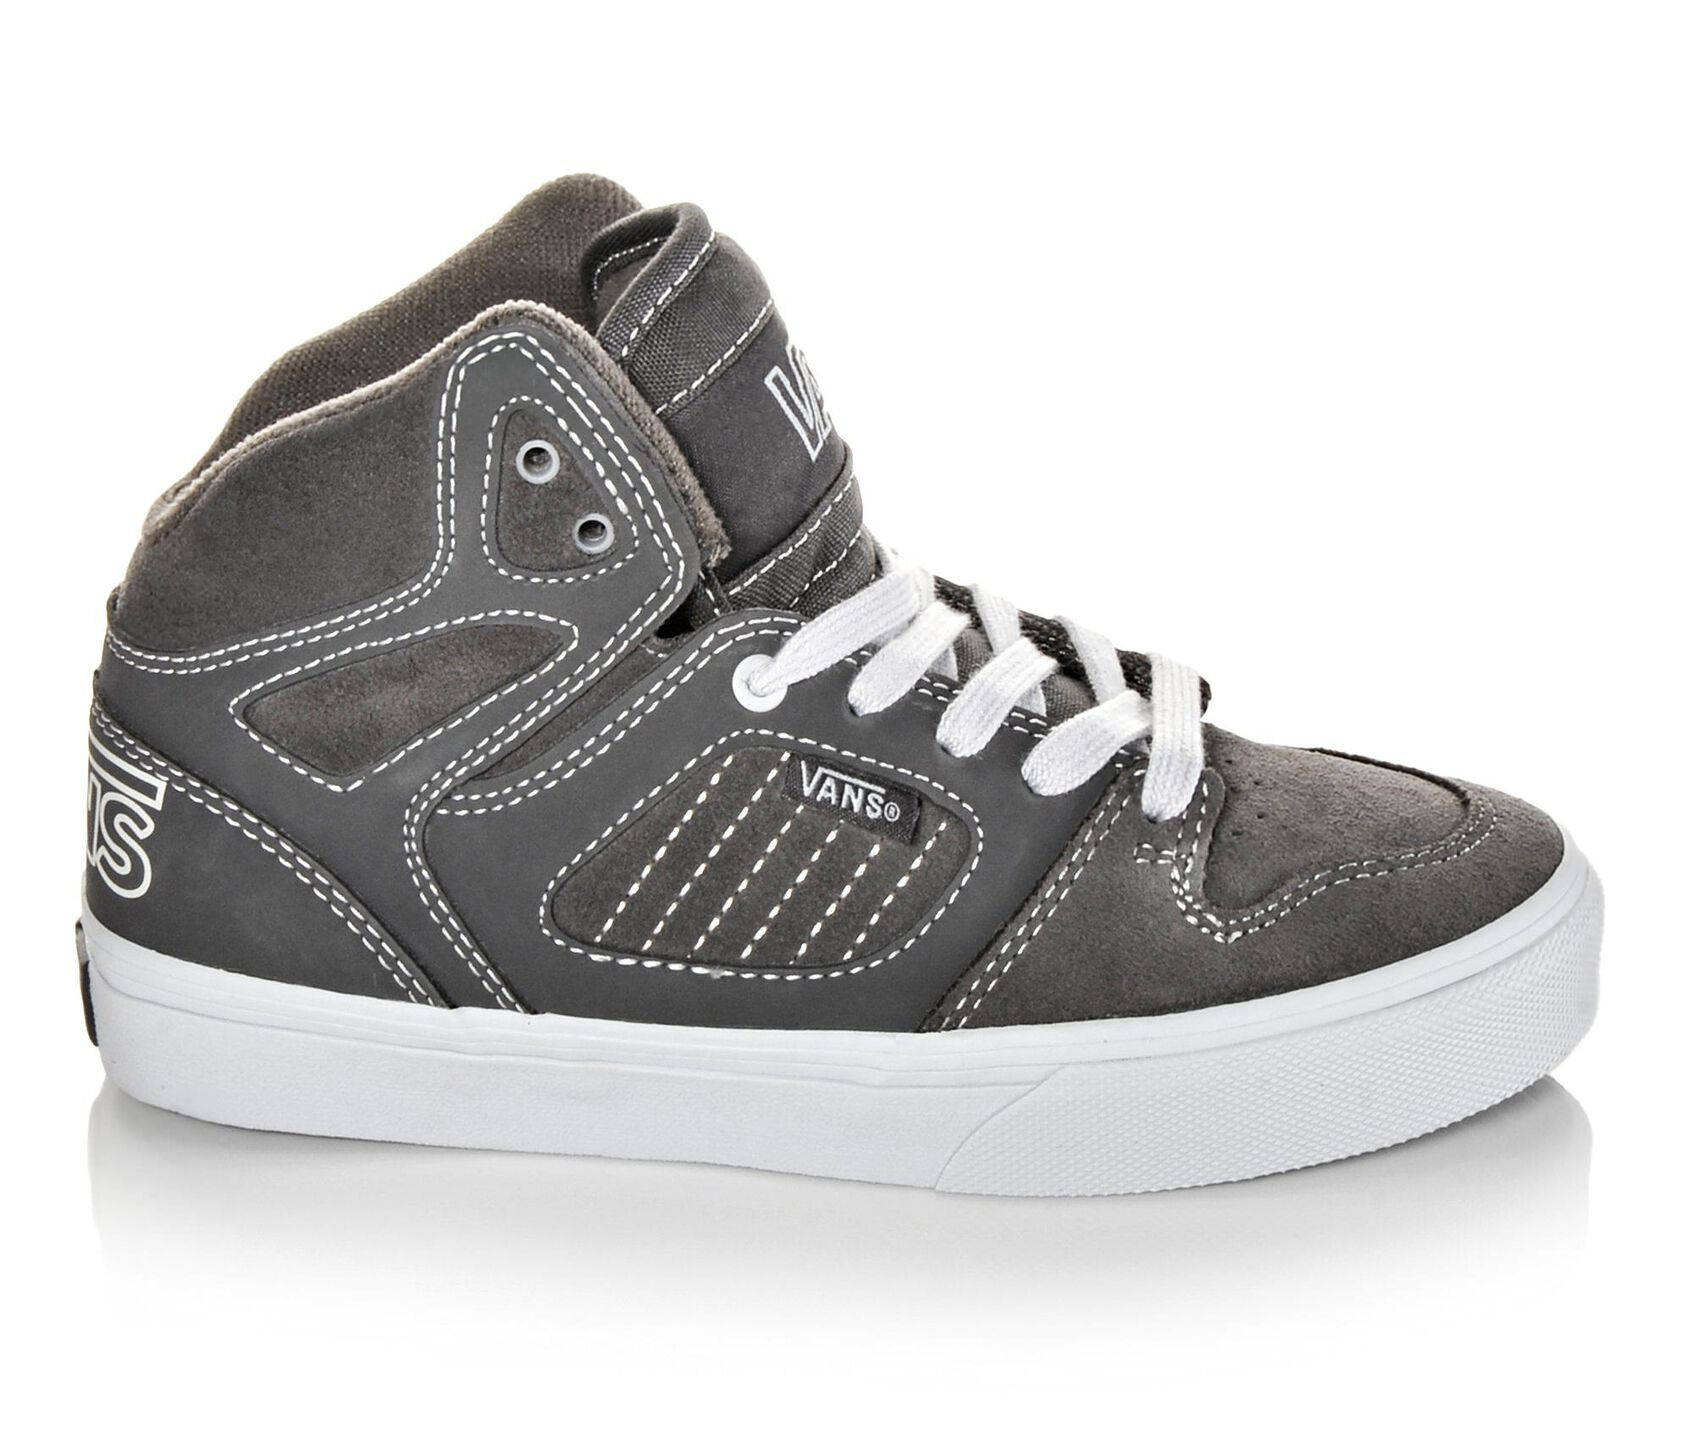 vans shoes black and white boys. vans shoes black and white boys